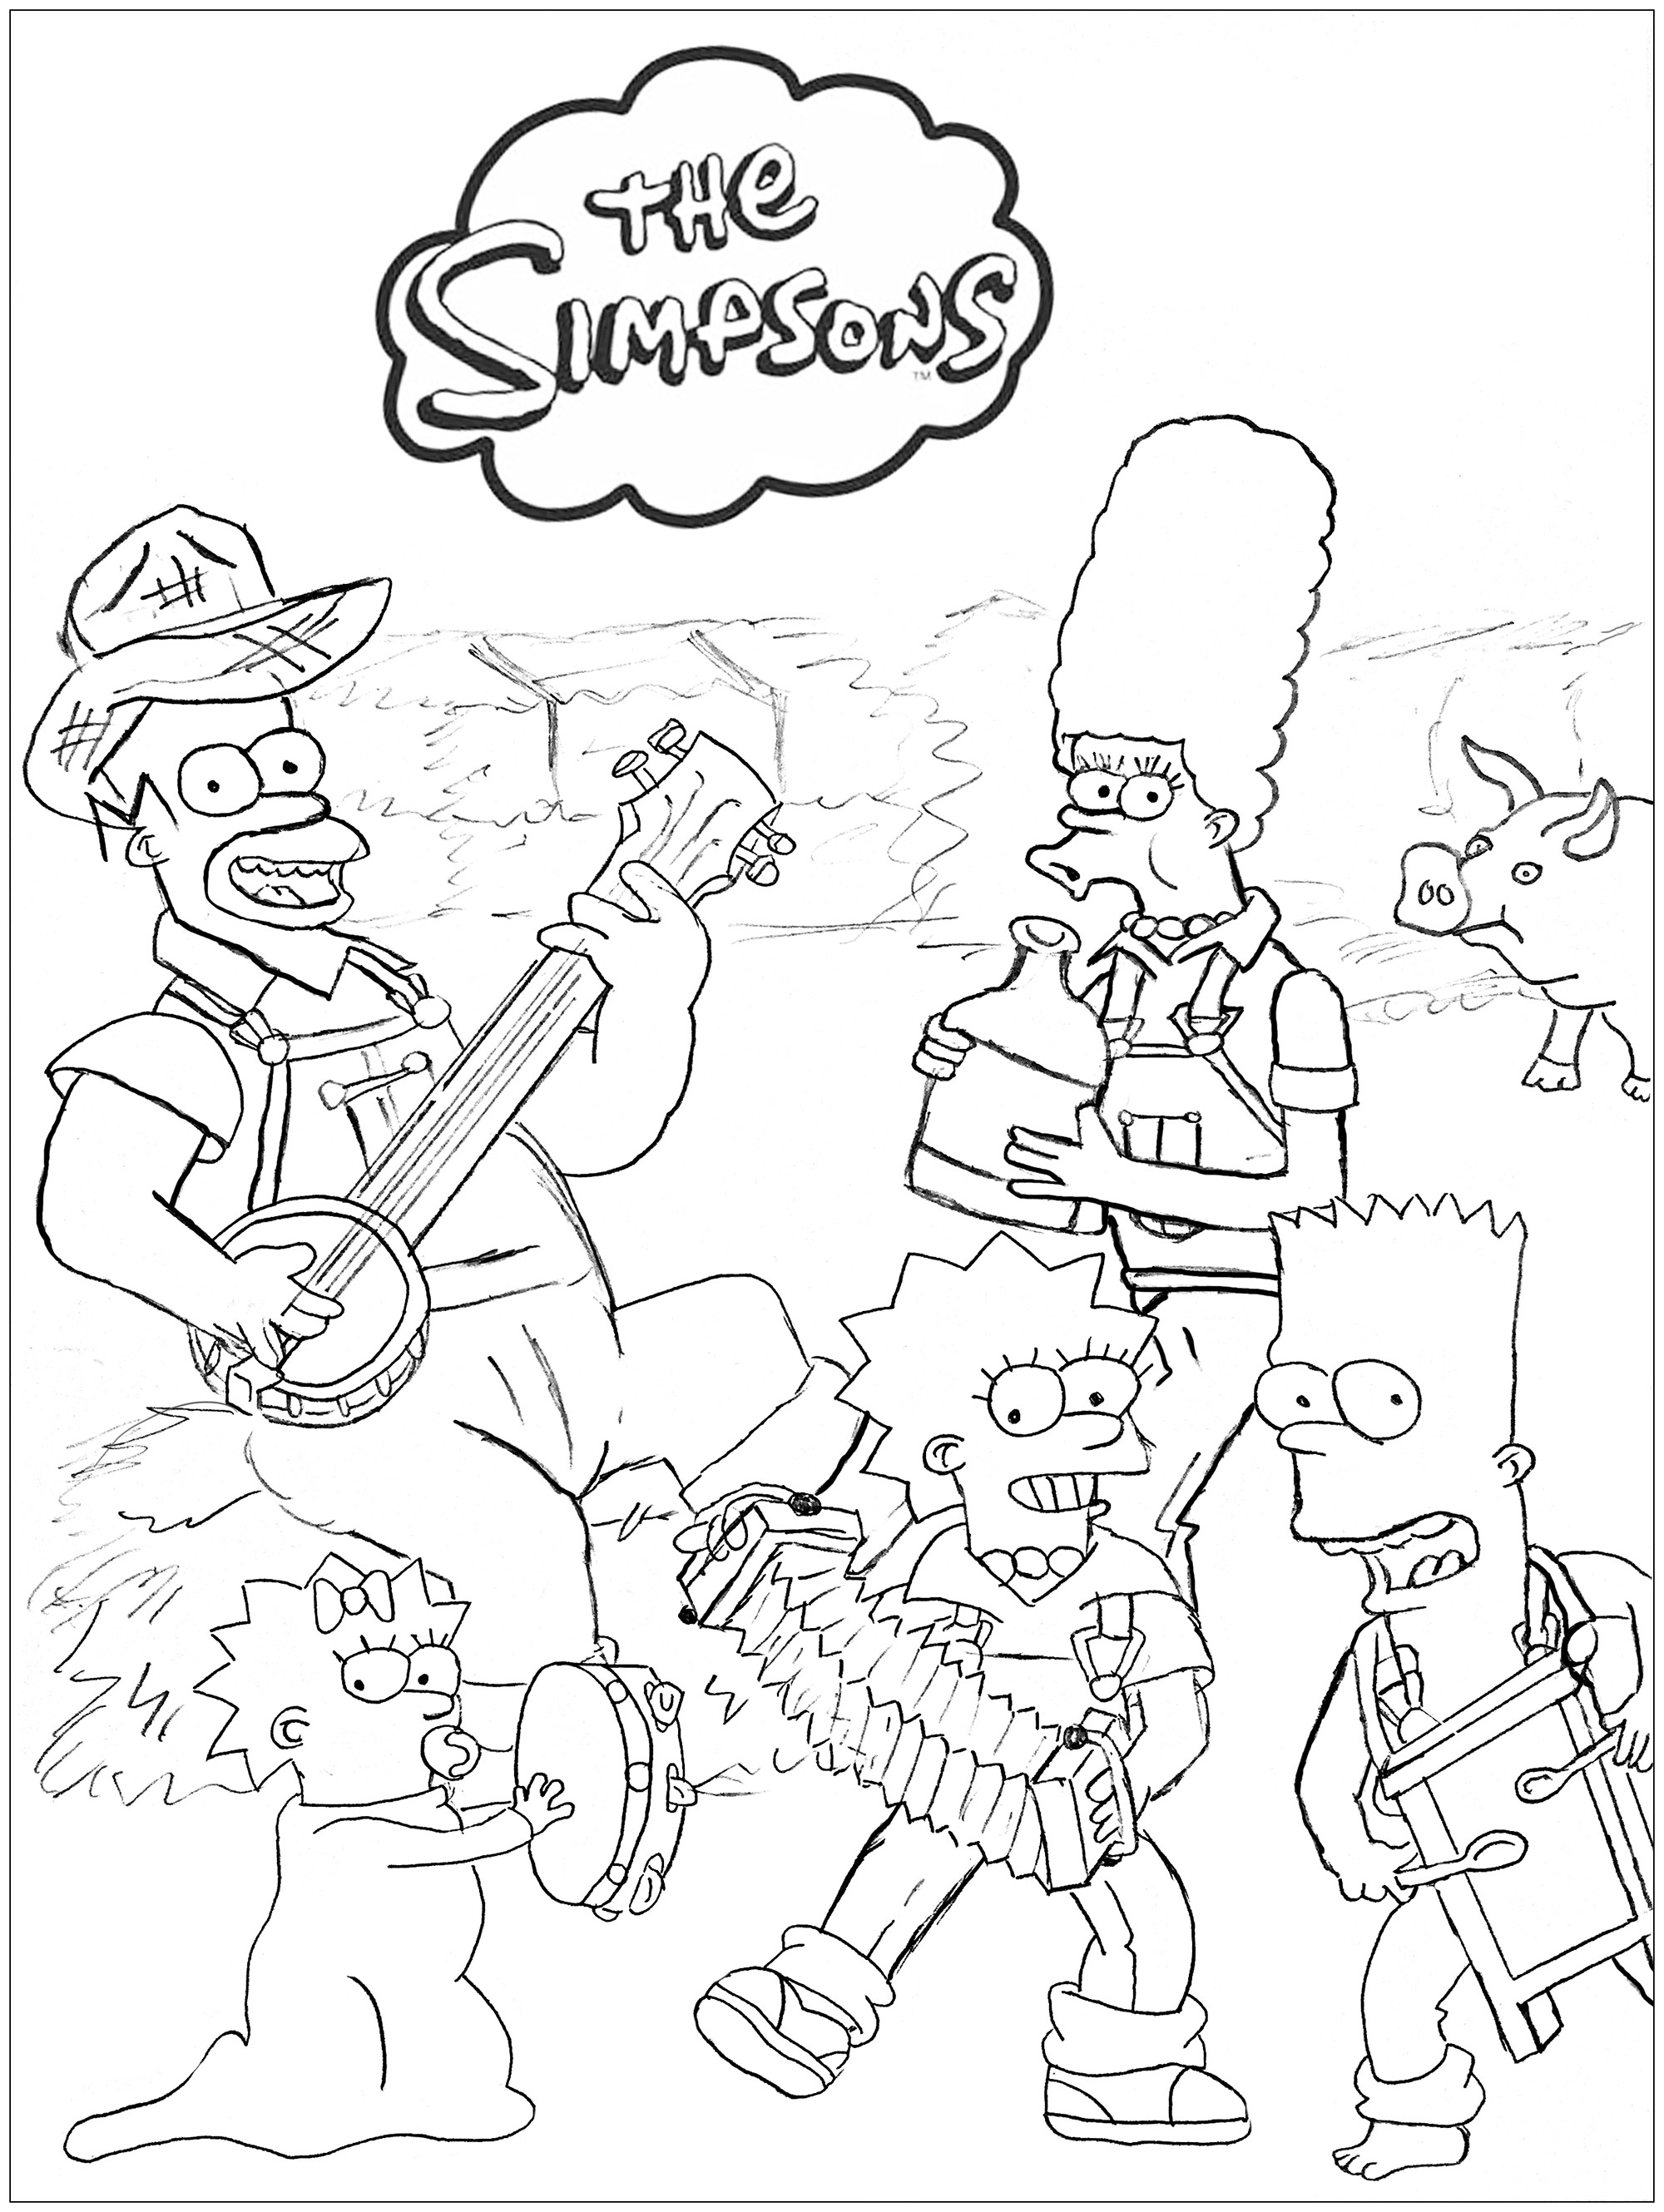 Les simpsons a la ferme coloriage simpsons coloriages - Coloriage simpson a imprimer ...